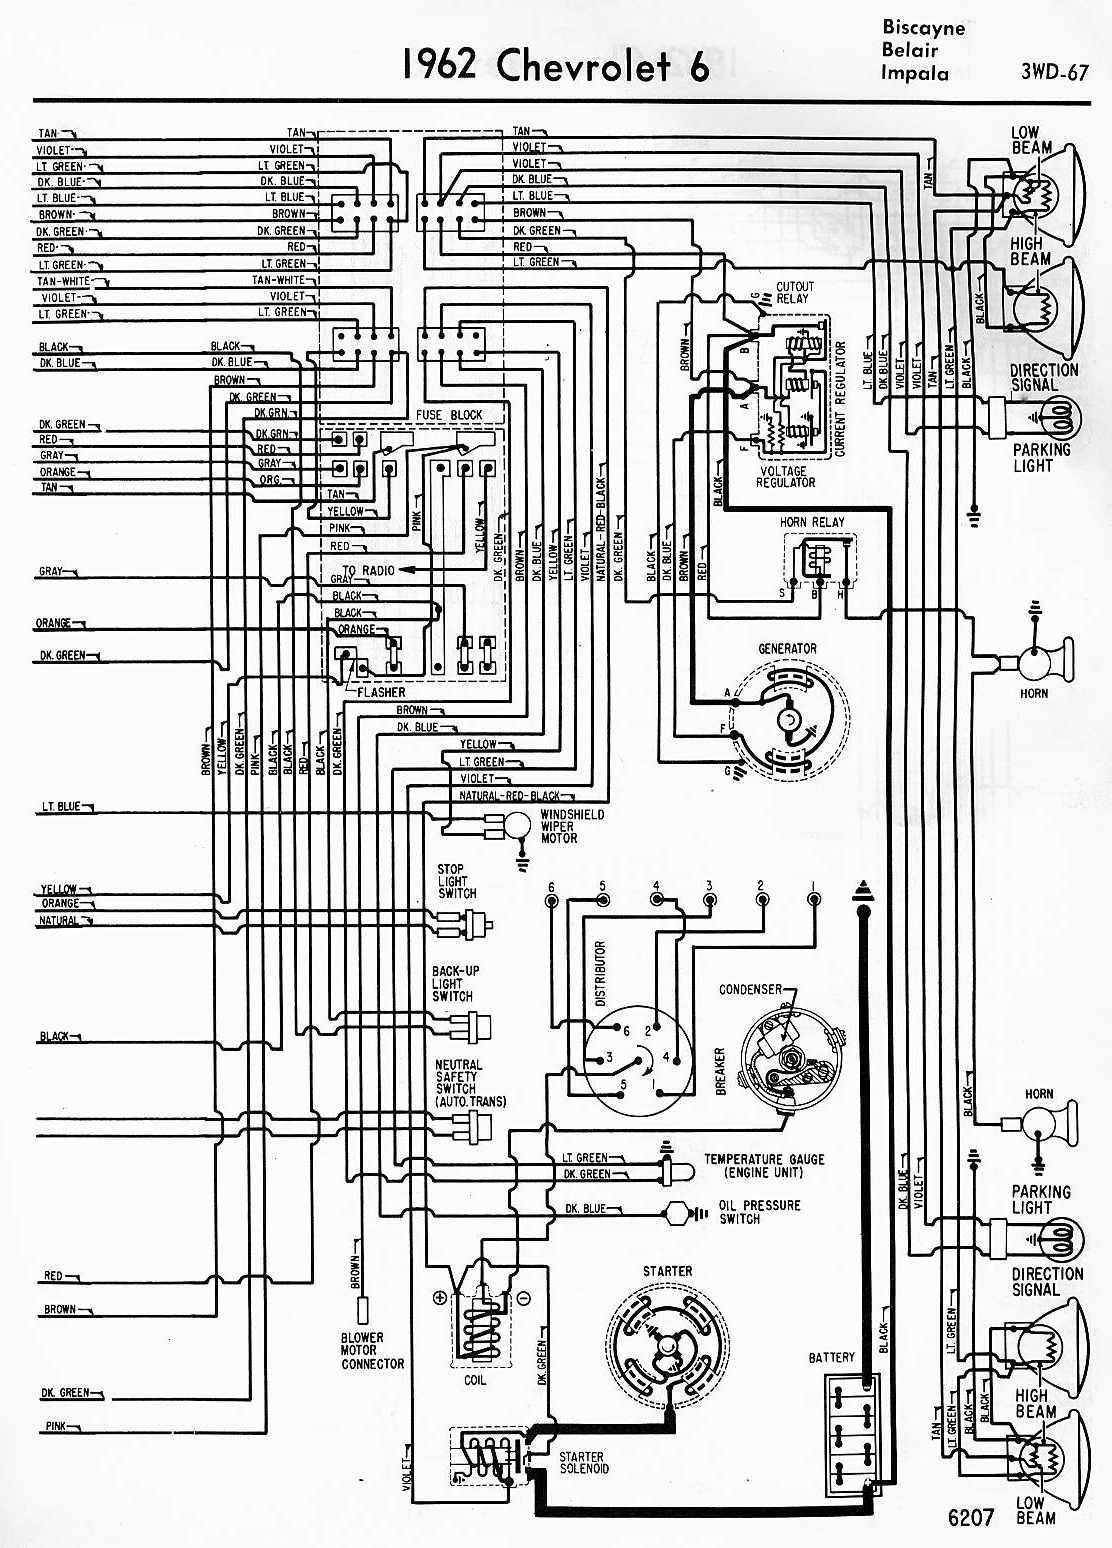 1962 chevy c10 wiring diagram wiring diagram schematics 1960 chevy wiring diagram 1962 chevy wiring diagram [ 1112 x 1548 Pixel ]